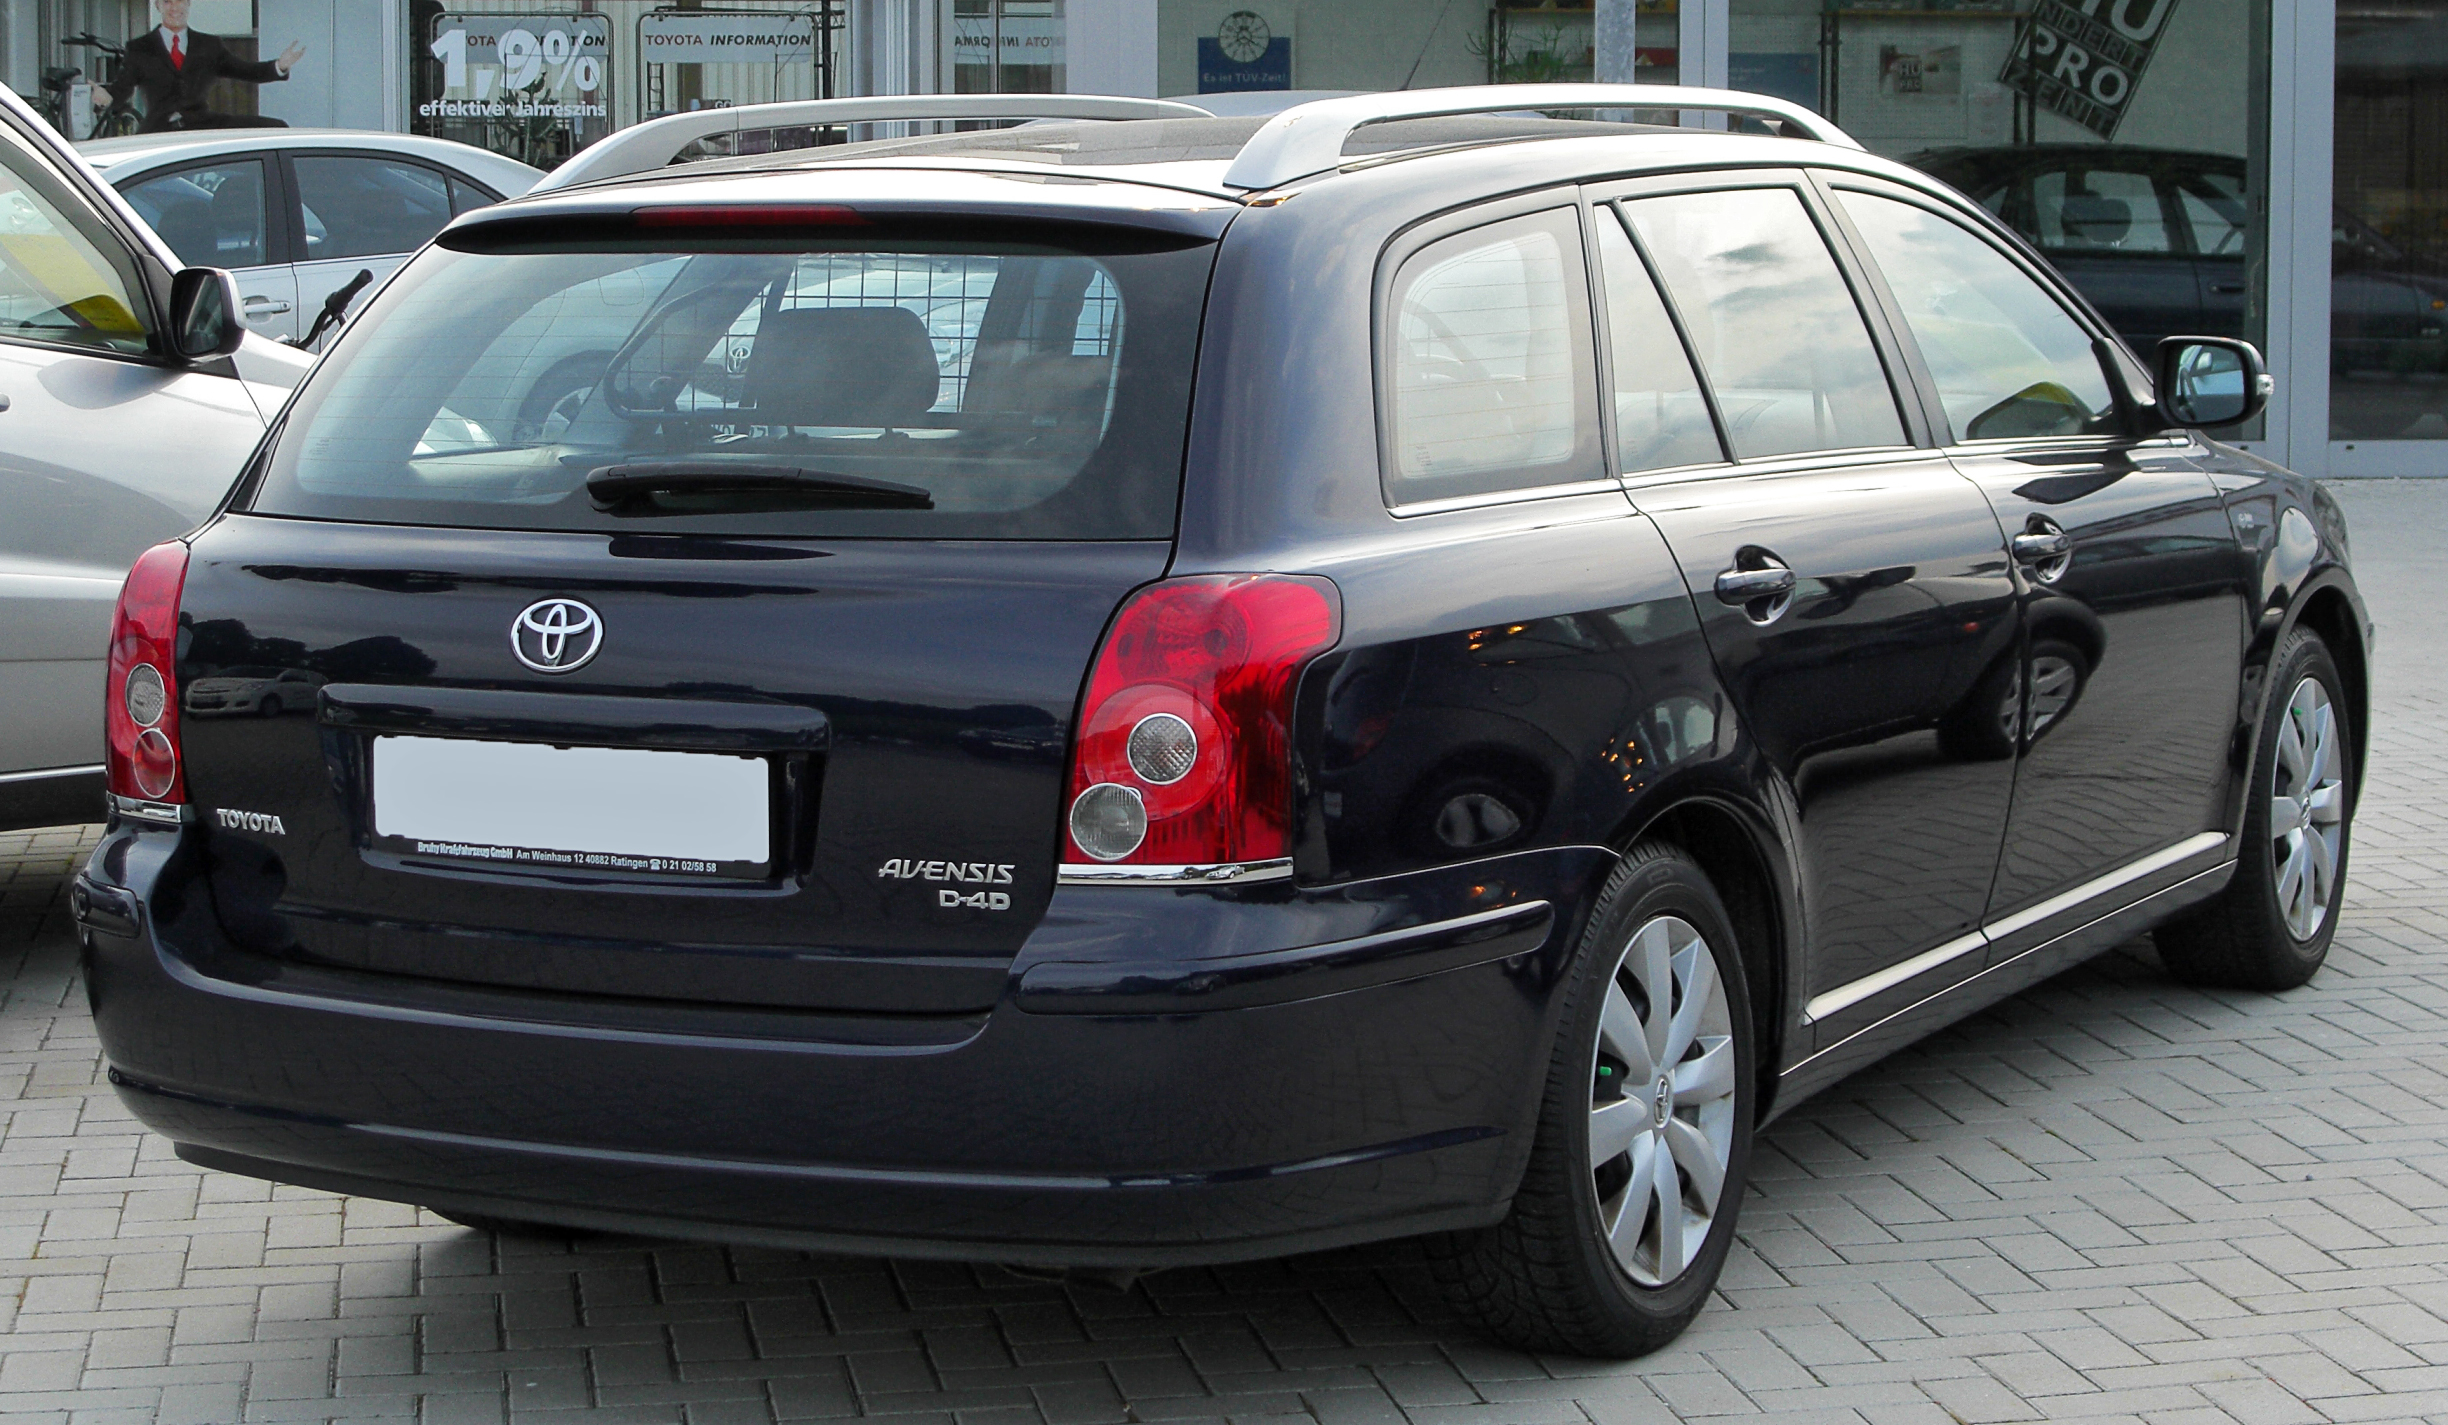 Toyota Avensis 2.0 D-4D photo 05